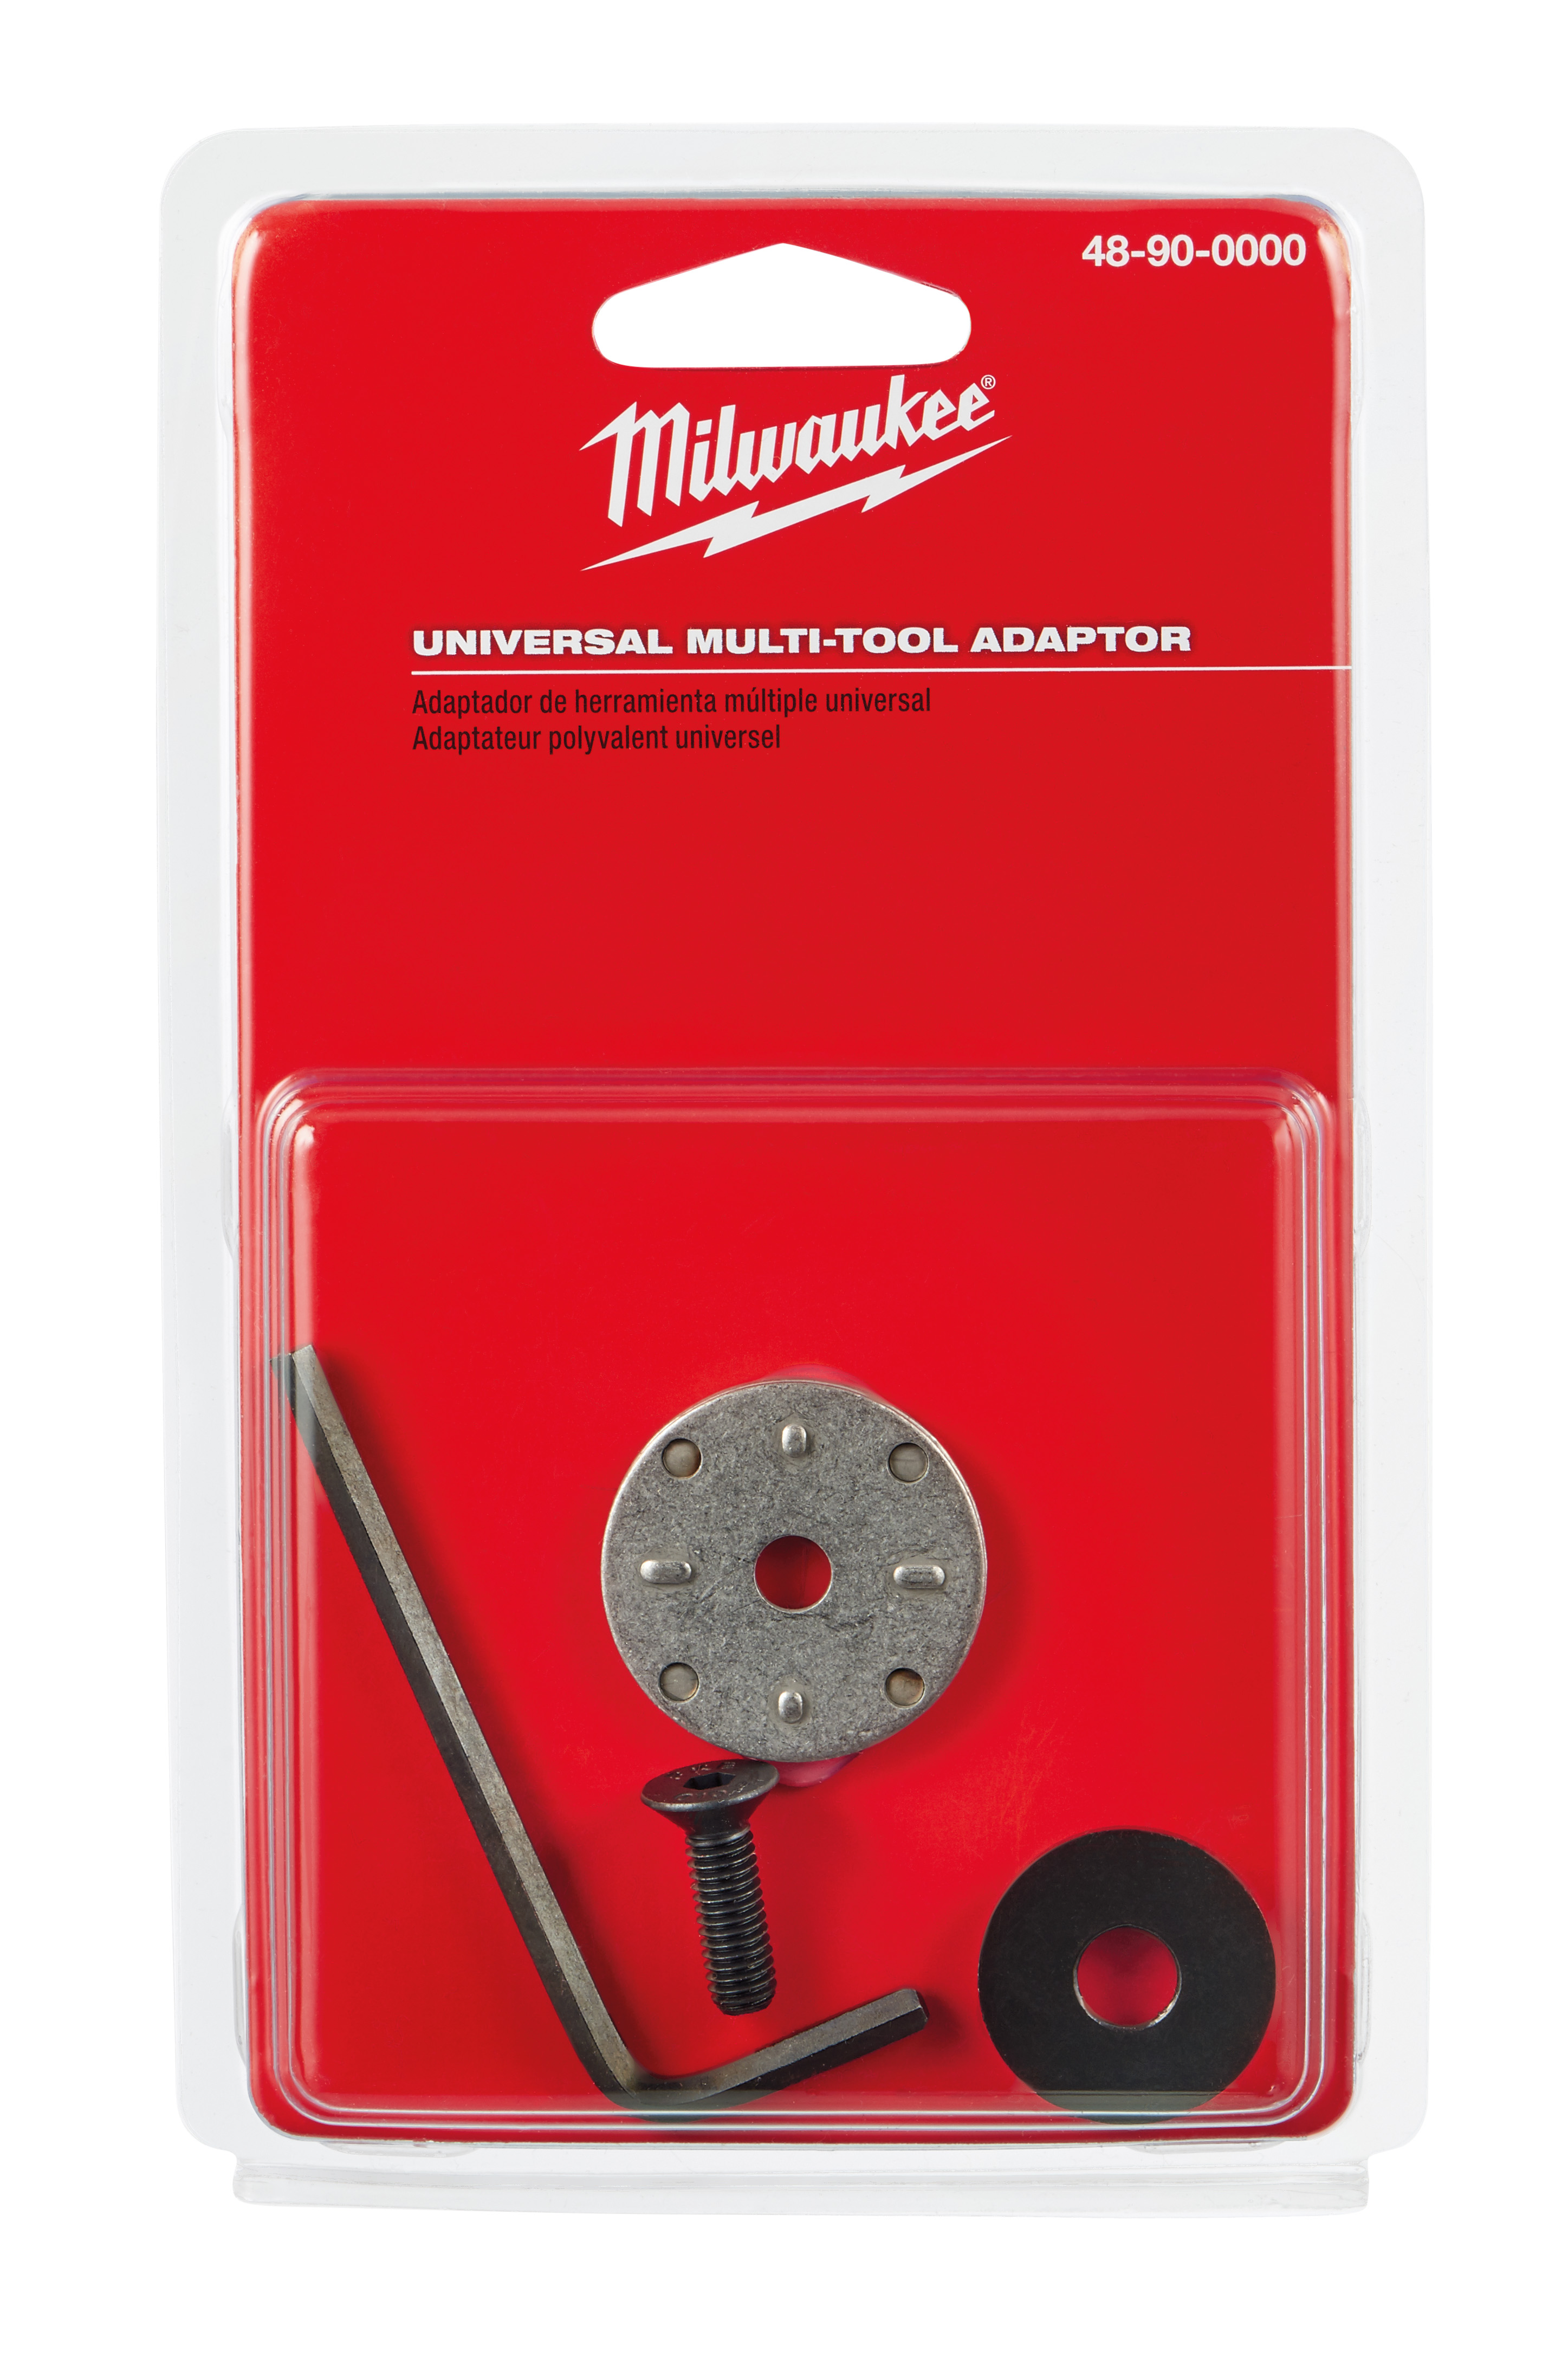 Milwaukee® M18™ 48-90-0000 Universal Multi-Tool Blade Adapter, For Use With Oscillating Tool, Porter Cable, Black and Decker and DeWalt® Brand Multi-Tool, 1/4 in ID x 3-1/4 in OD x 1/8 in THK, Steel